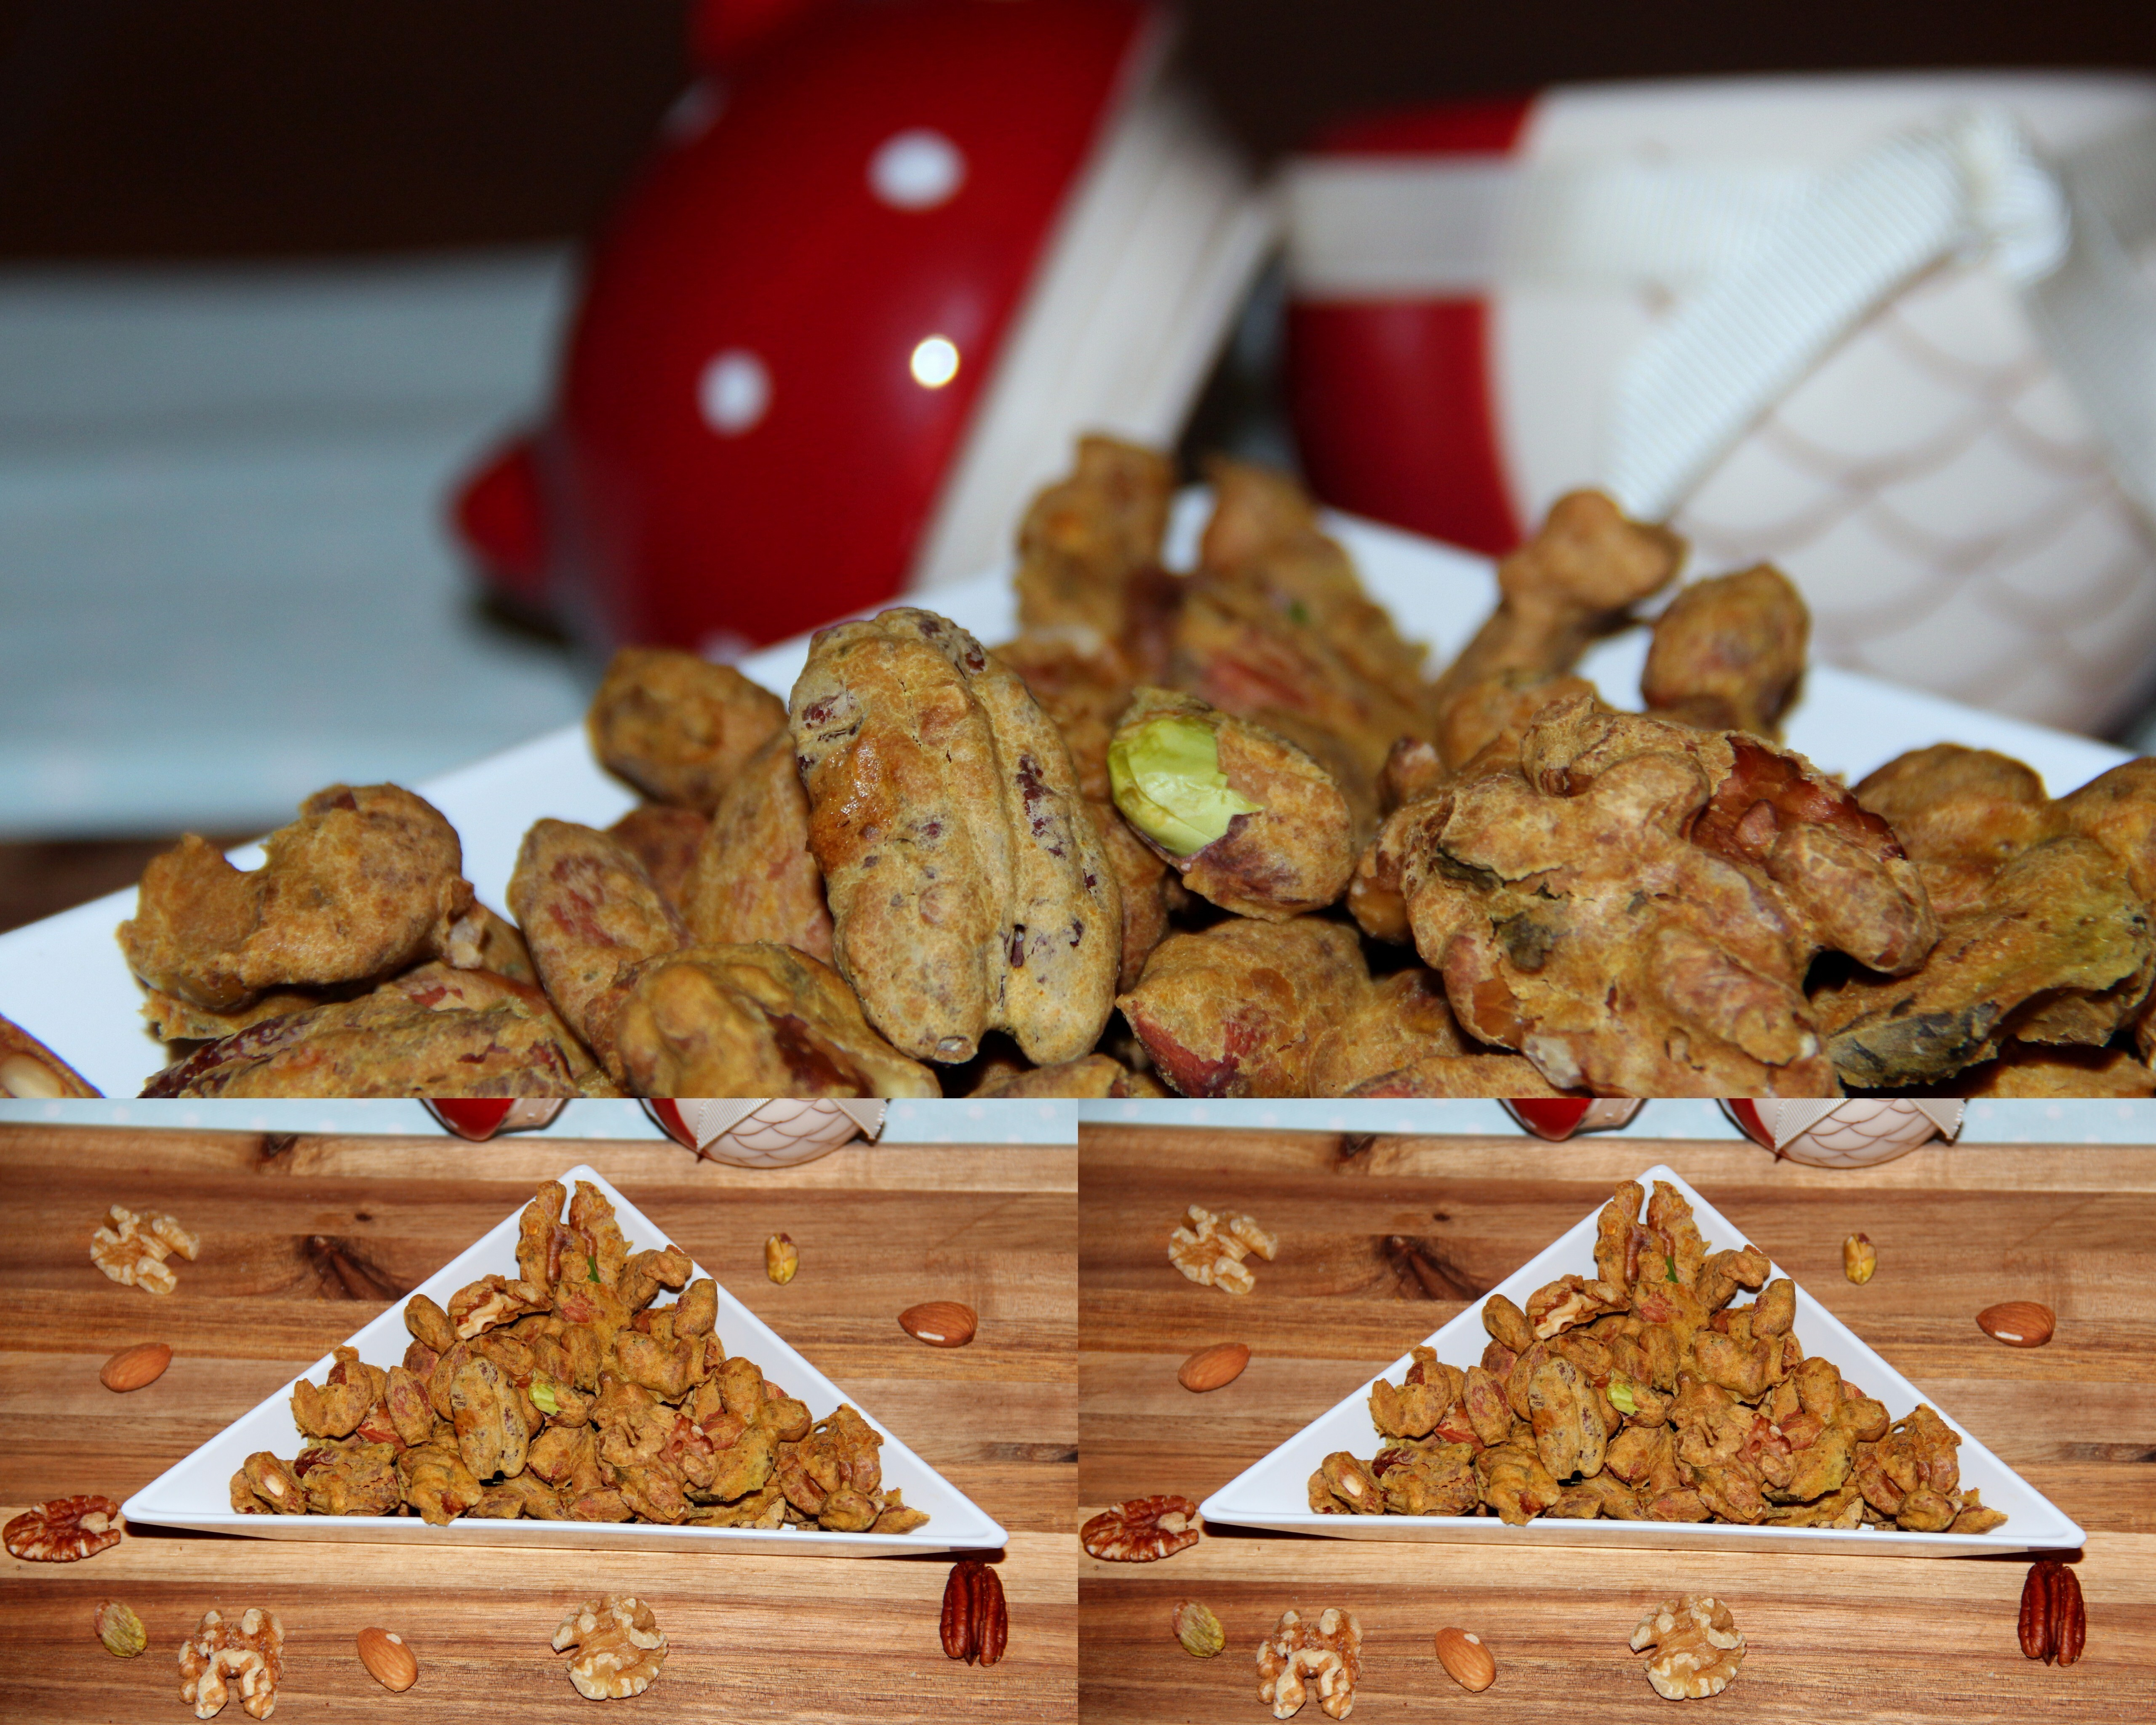 Baked – Spicy coated mixed nuts